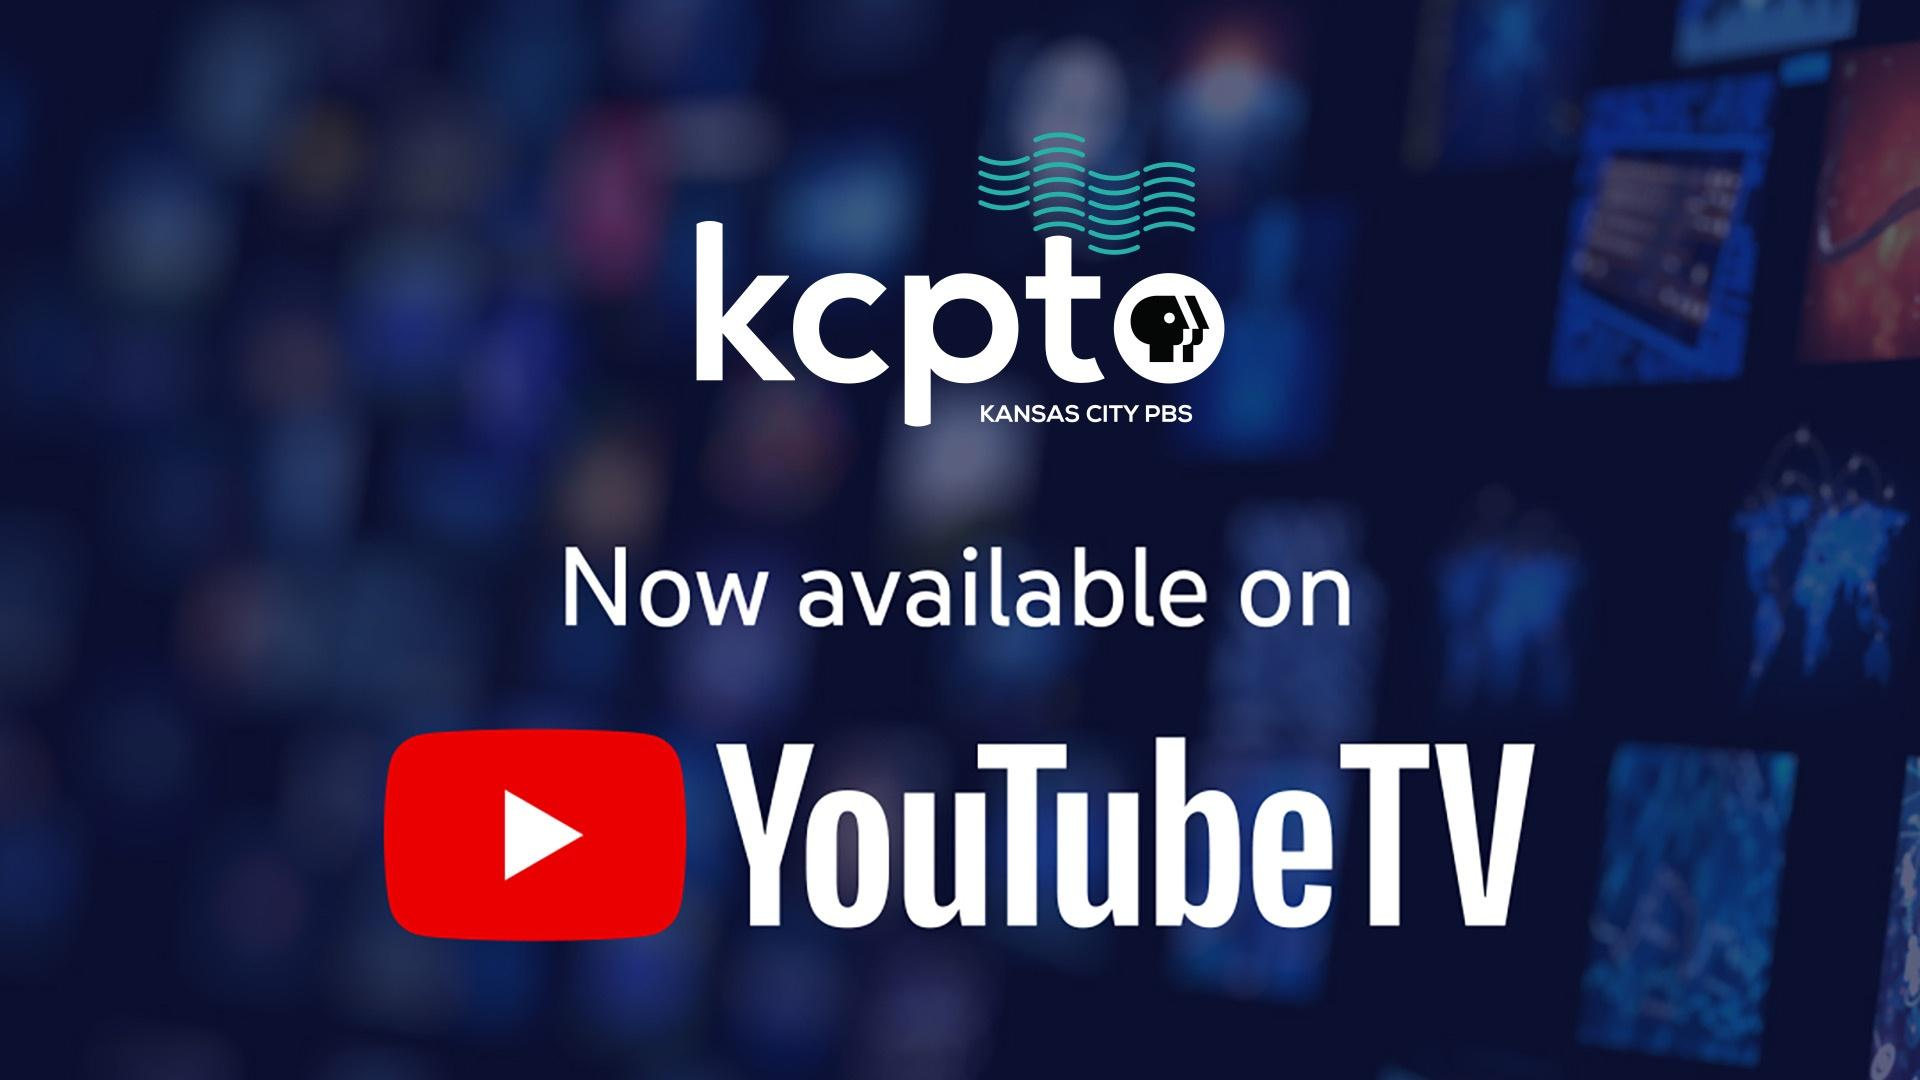 KCPT Logo - Now available on YouTubeTV